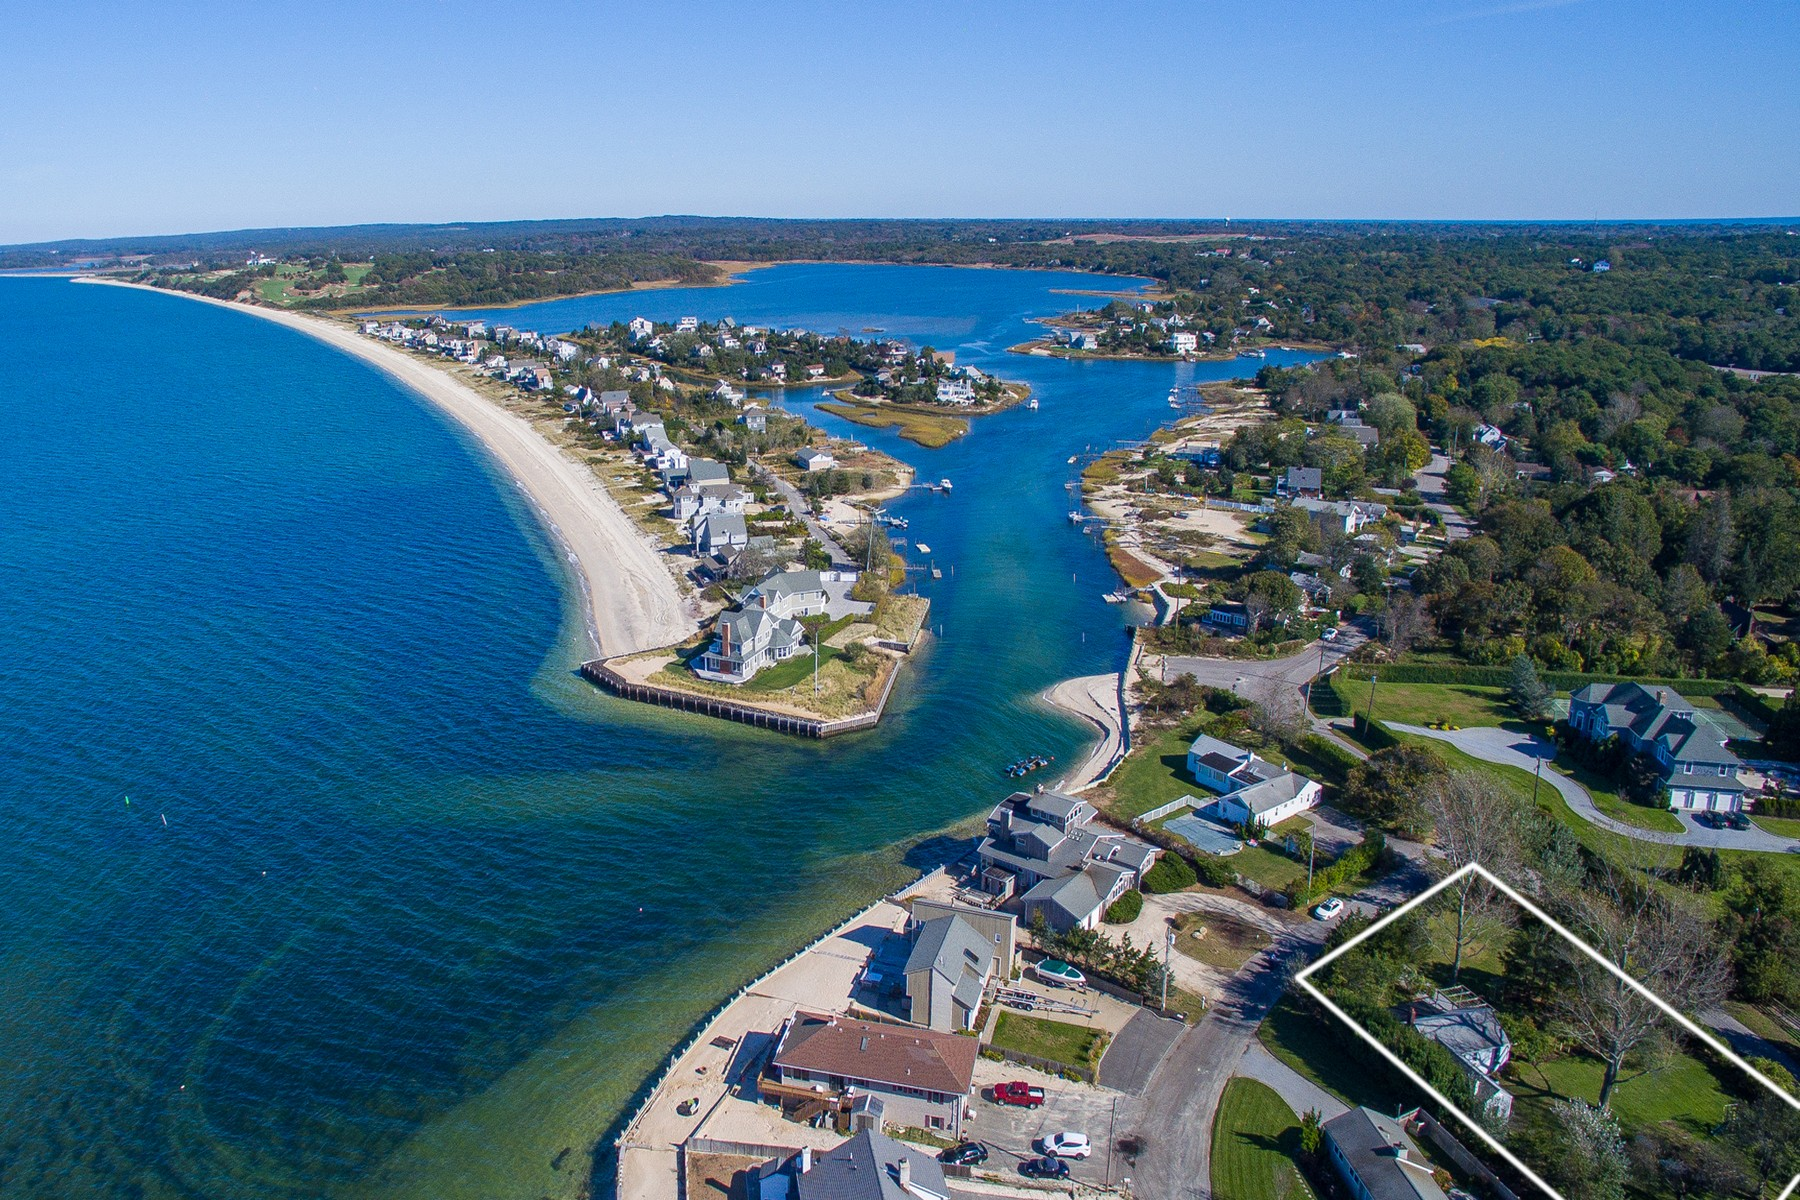 Single Family Home for Active at 1 And 3 Peconic Cres , Hampton Bays, NY 11946 1 And 3 Peconic Cres Hampton Bays, New York 11946 United States